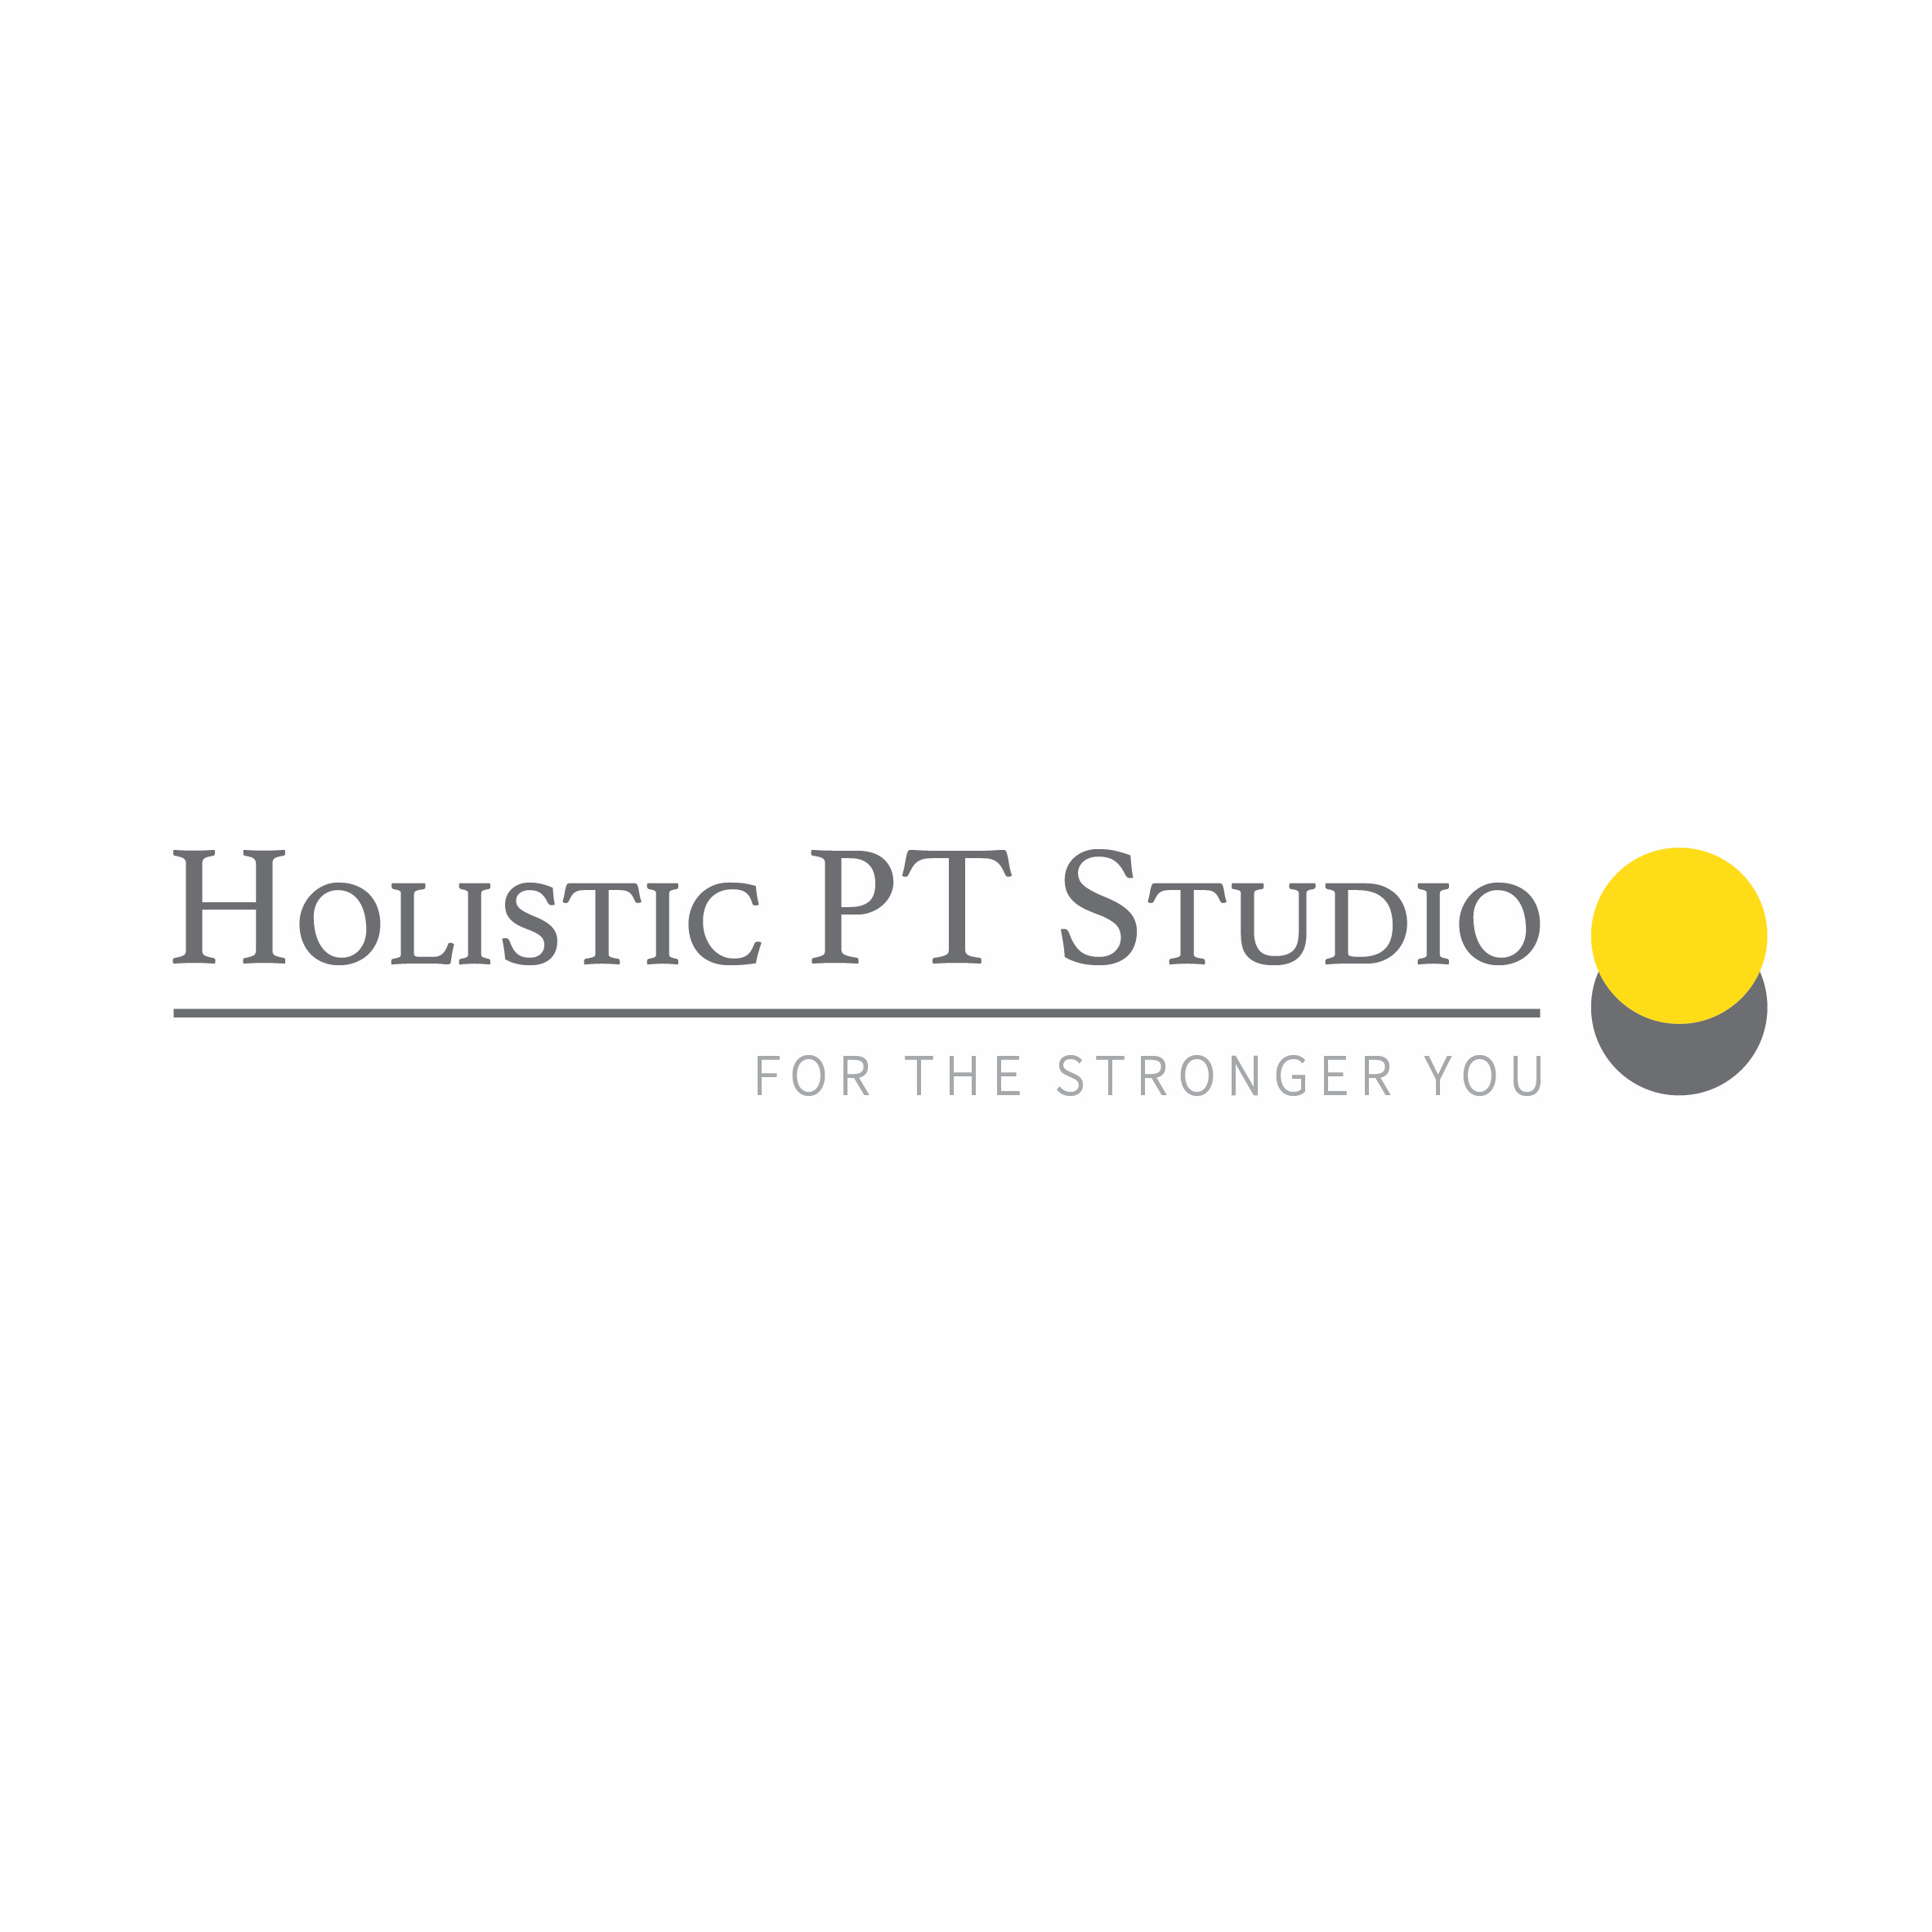 Holistic PT Studio